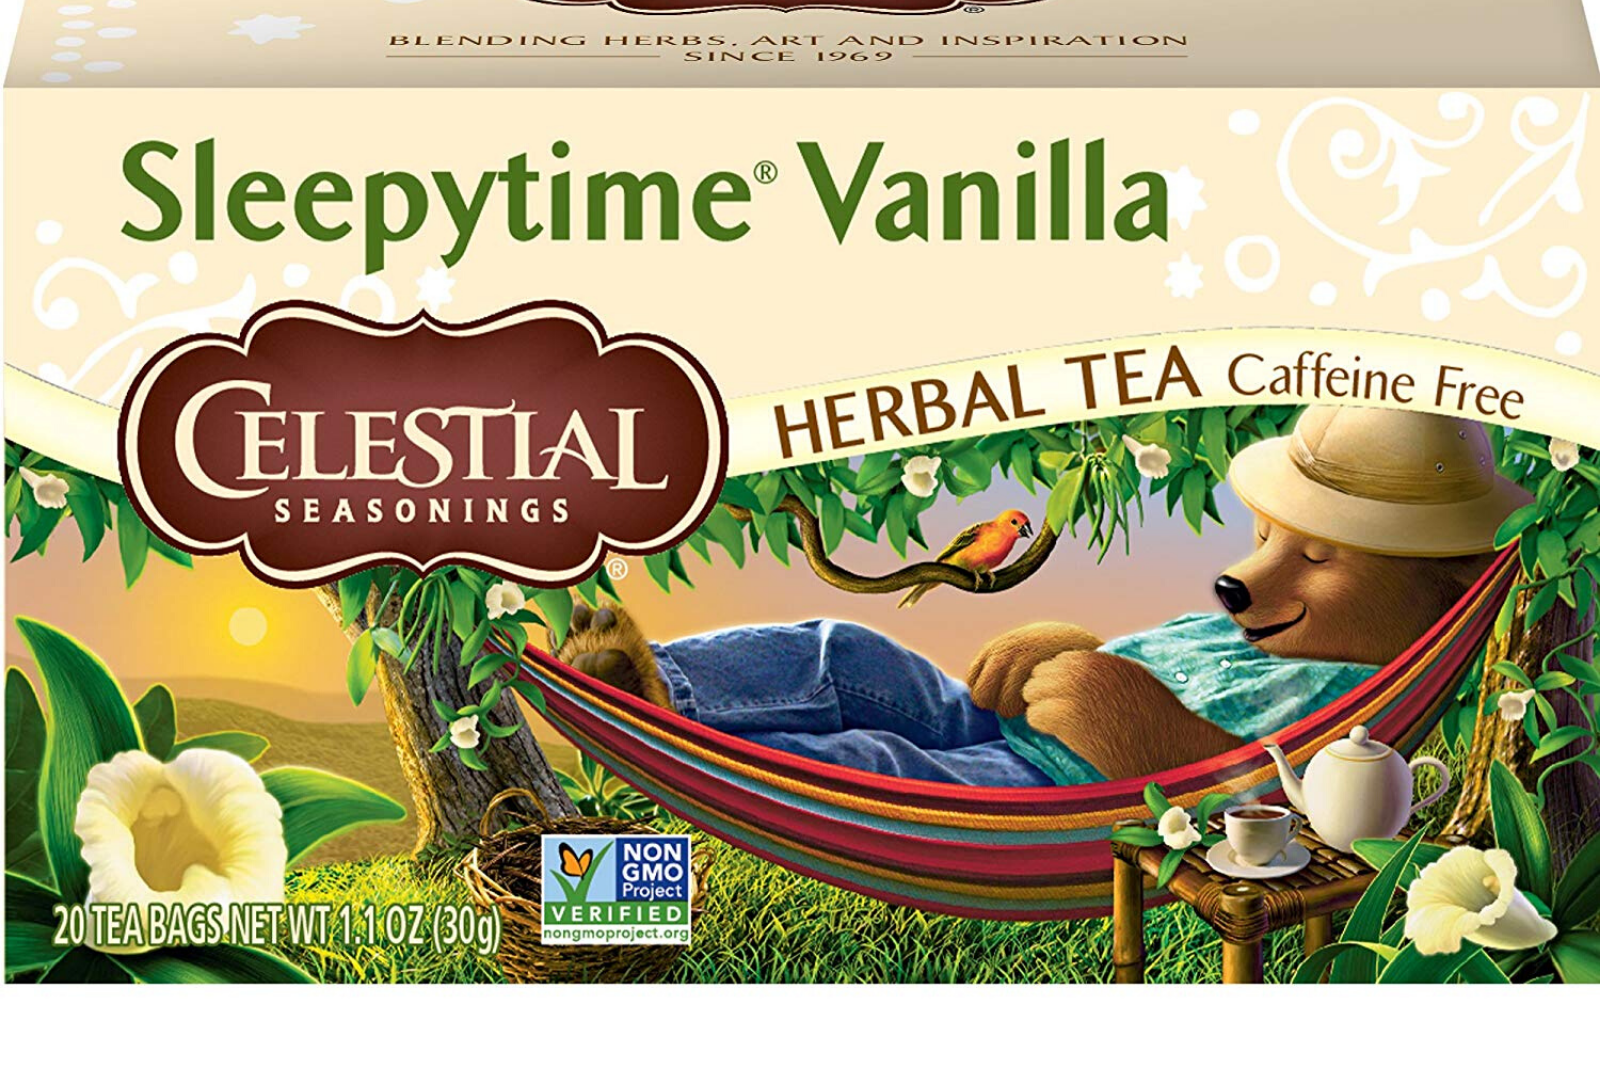 Is There A Benefit To Drinking Organic Tea vs. Regular Tea?